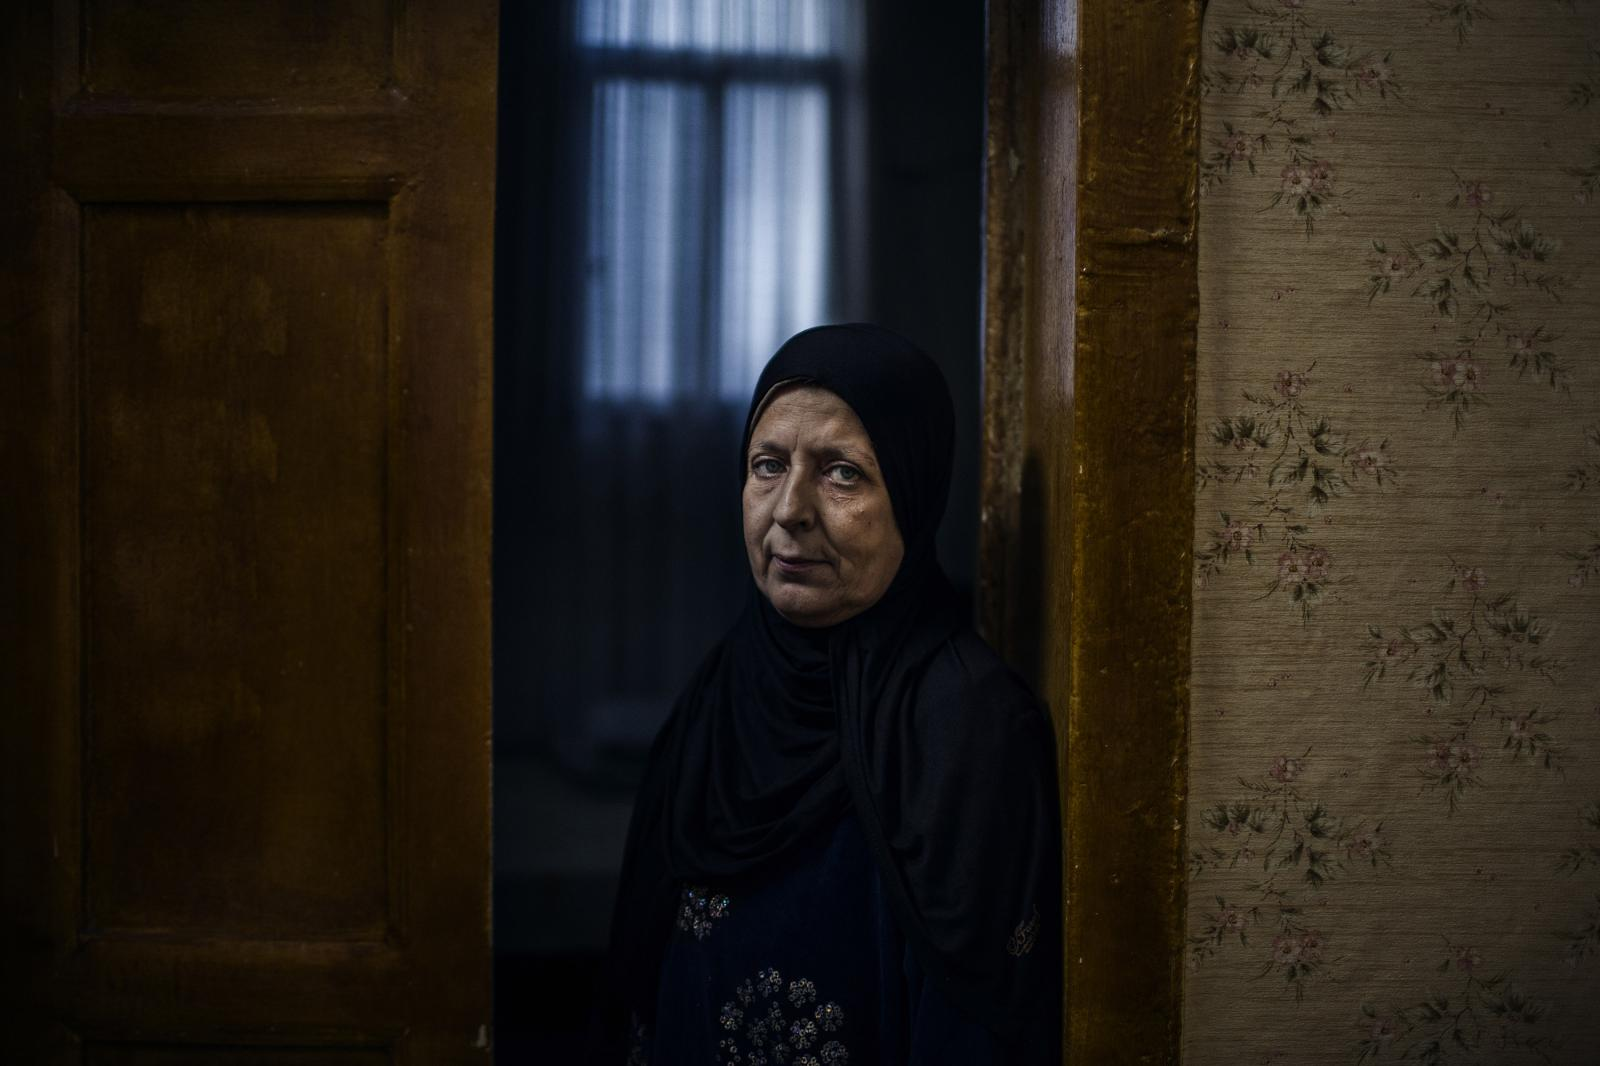 Sahar Khaja, 58, lives in a house al-Mina where the ceiling is falling apart. Some 15 members of her family live in a tiny three-bedroom house. Her nephew's family just moved in after their neighbor's roof collapsed. December 11th, 2019. Diego Ibarra Sánchez for CNN